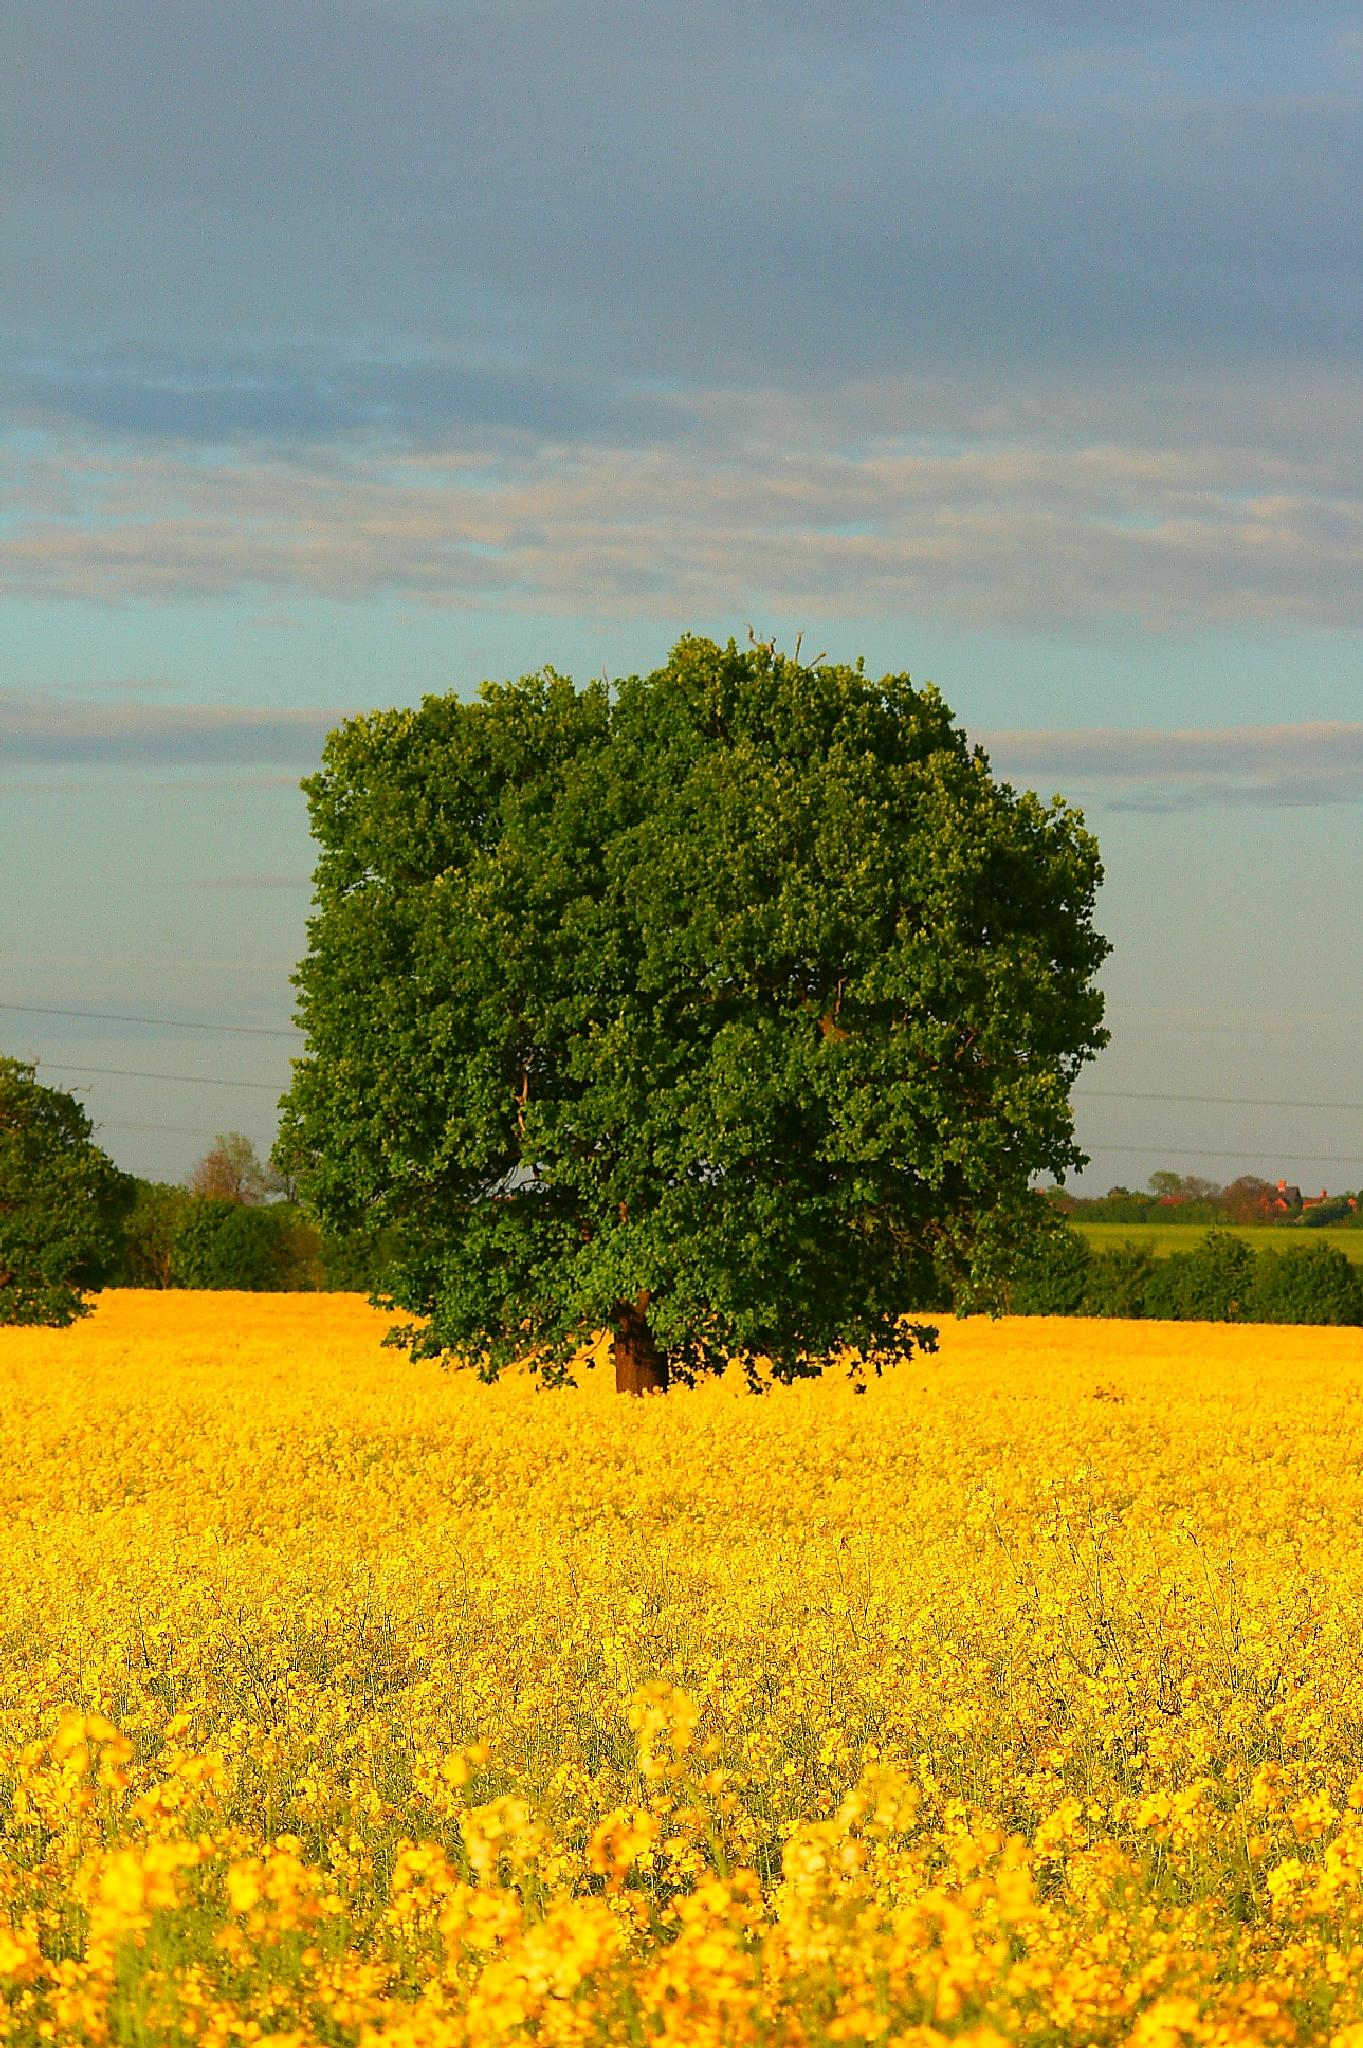 In a sea of yellow by keve E